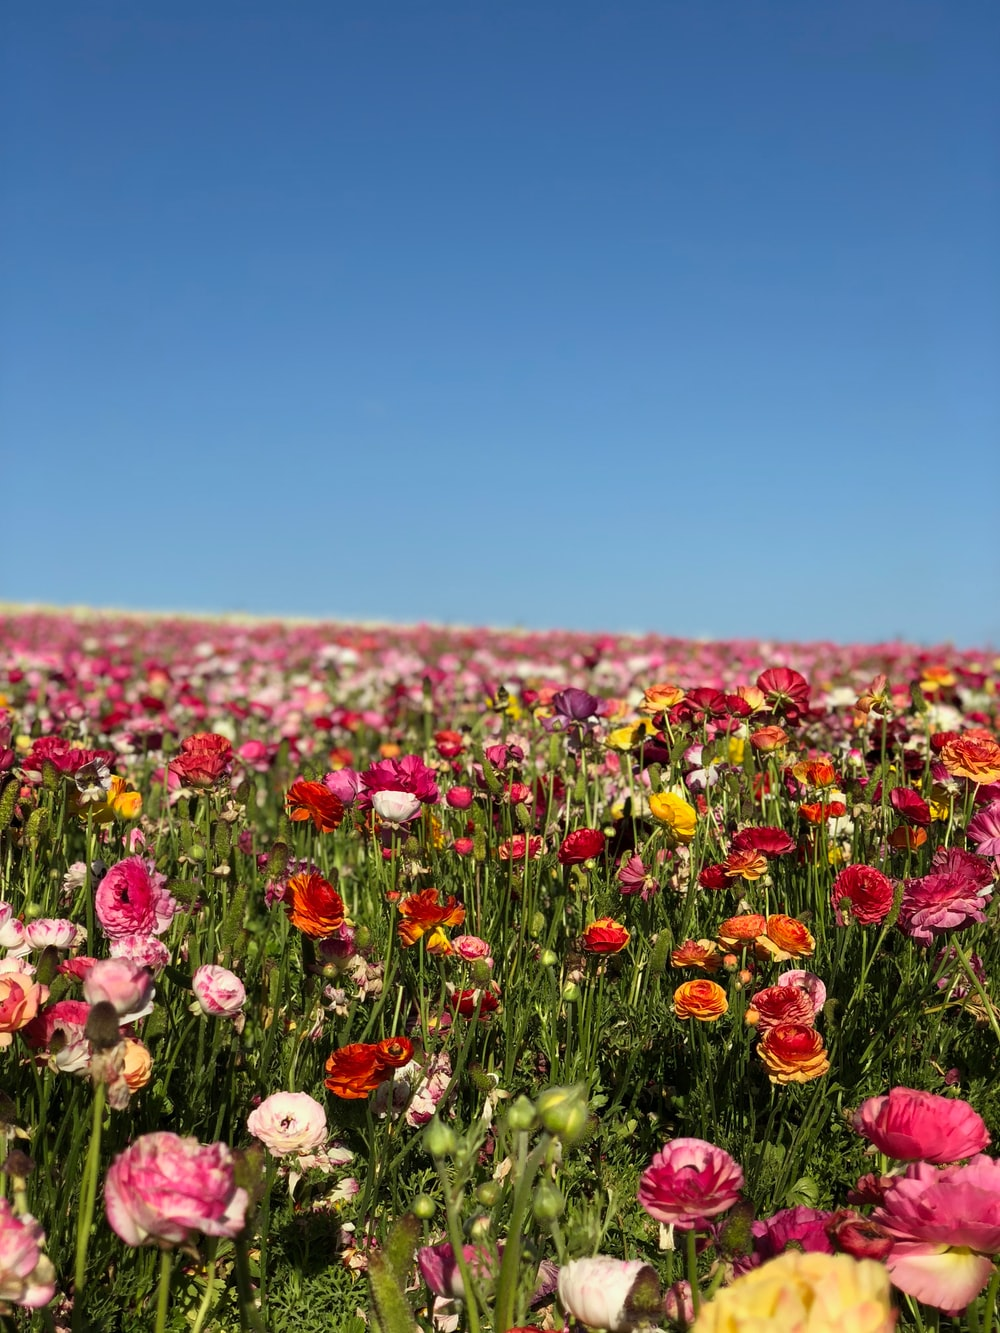 500 Flower Field Pictures Hd Download Free Images On Unsplash